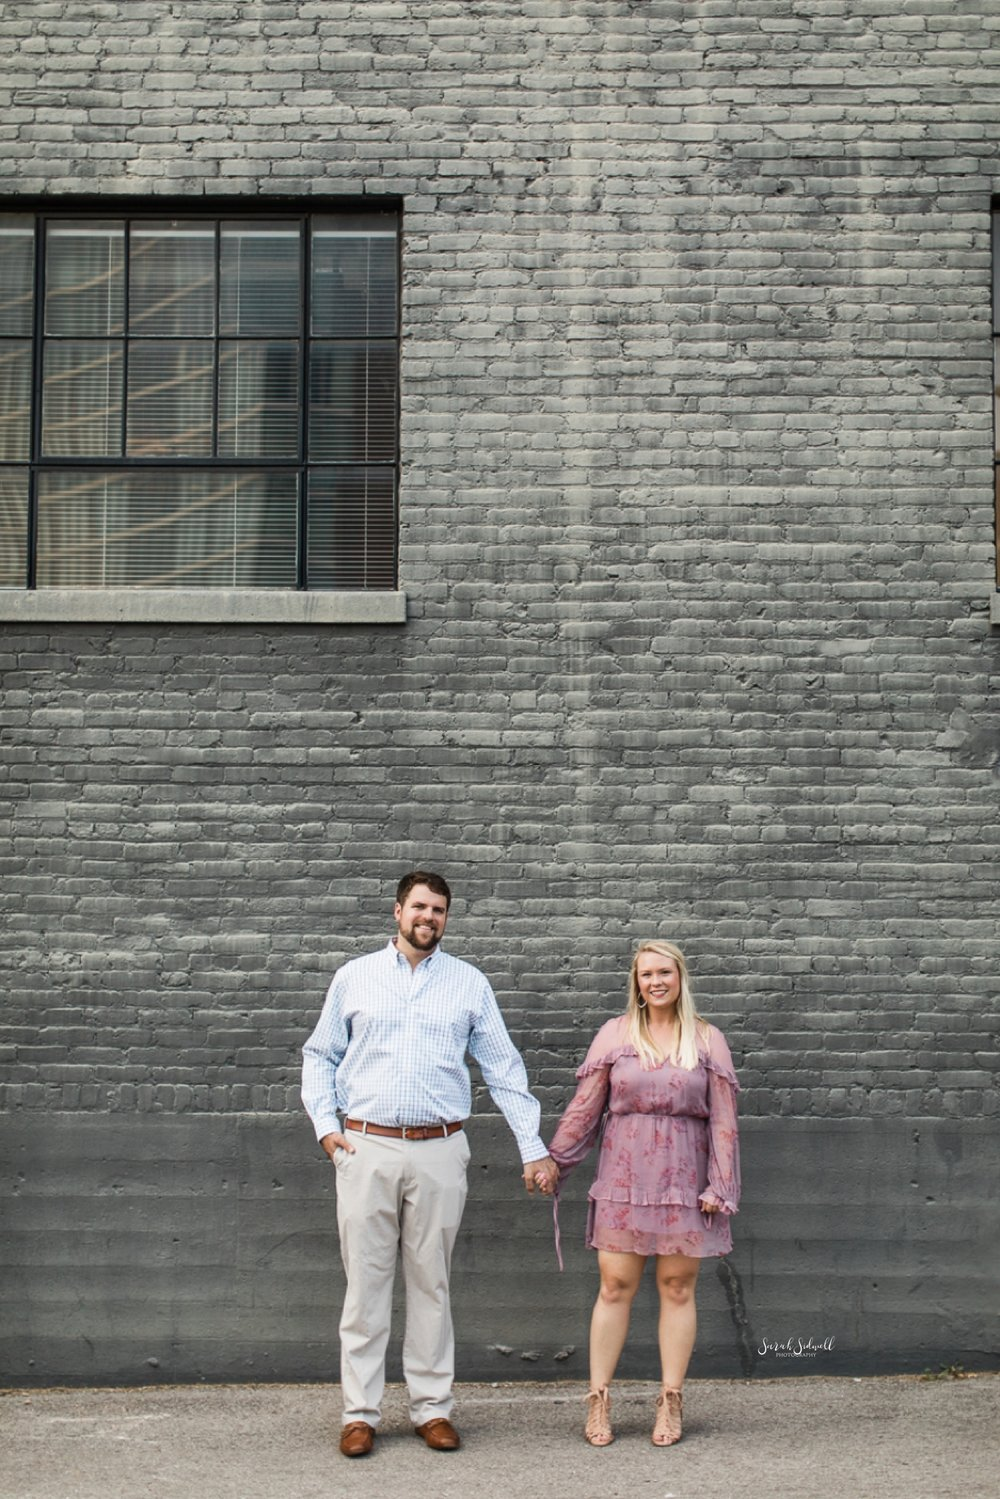 A couple hold hands in front of a grey brick building.